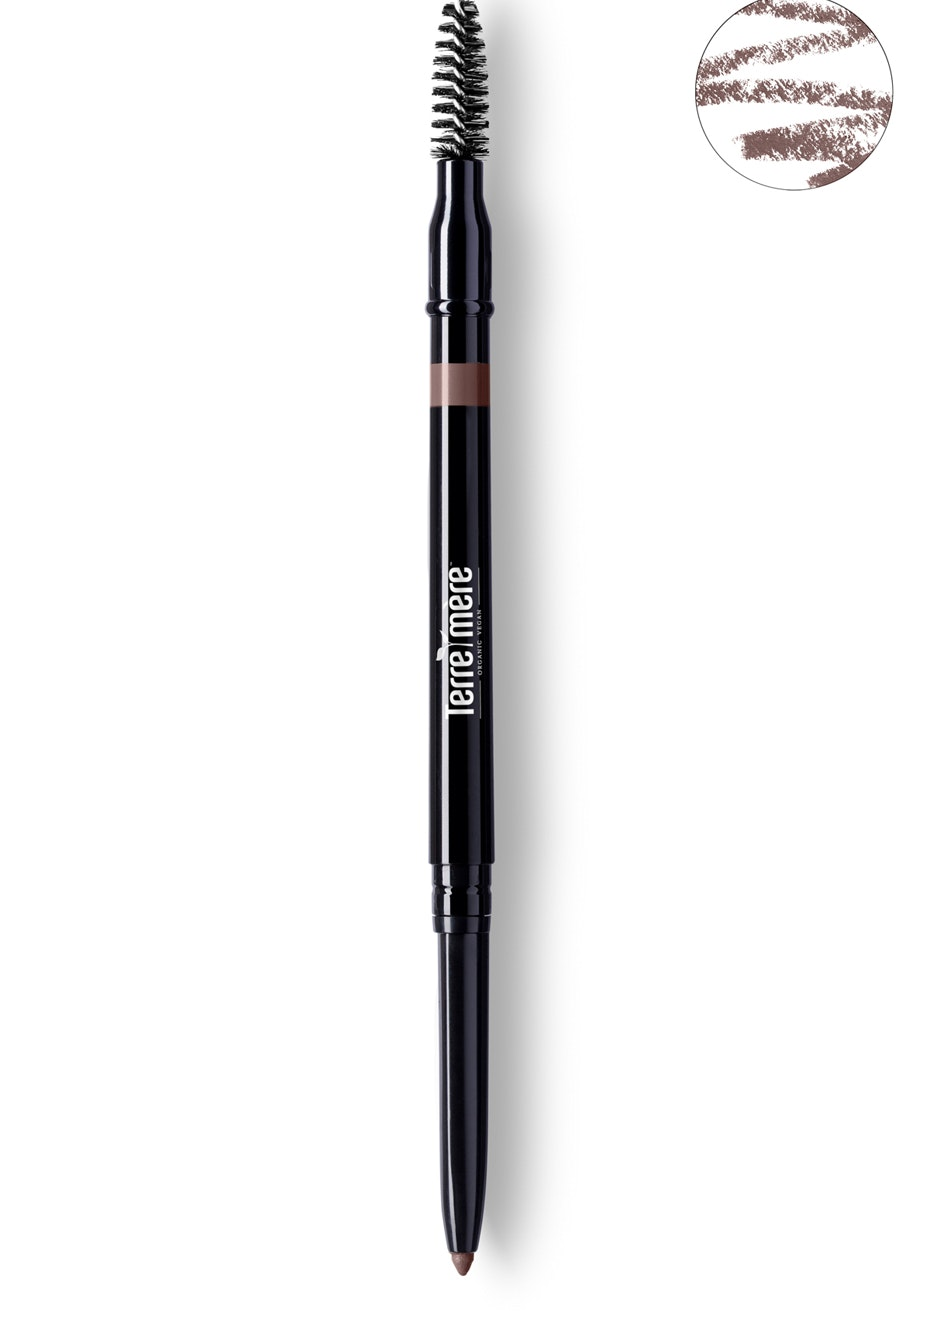 Terre Mere - Indelible Brow Pencil - Brunette